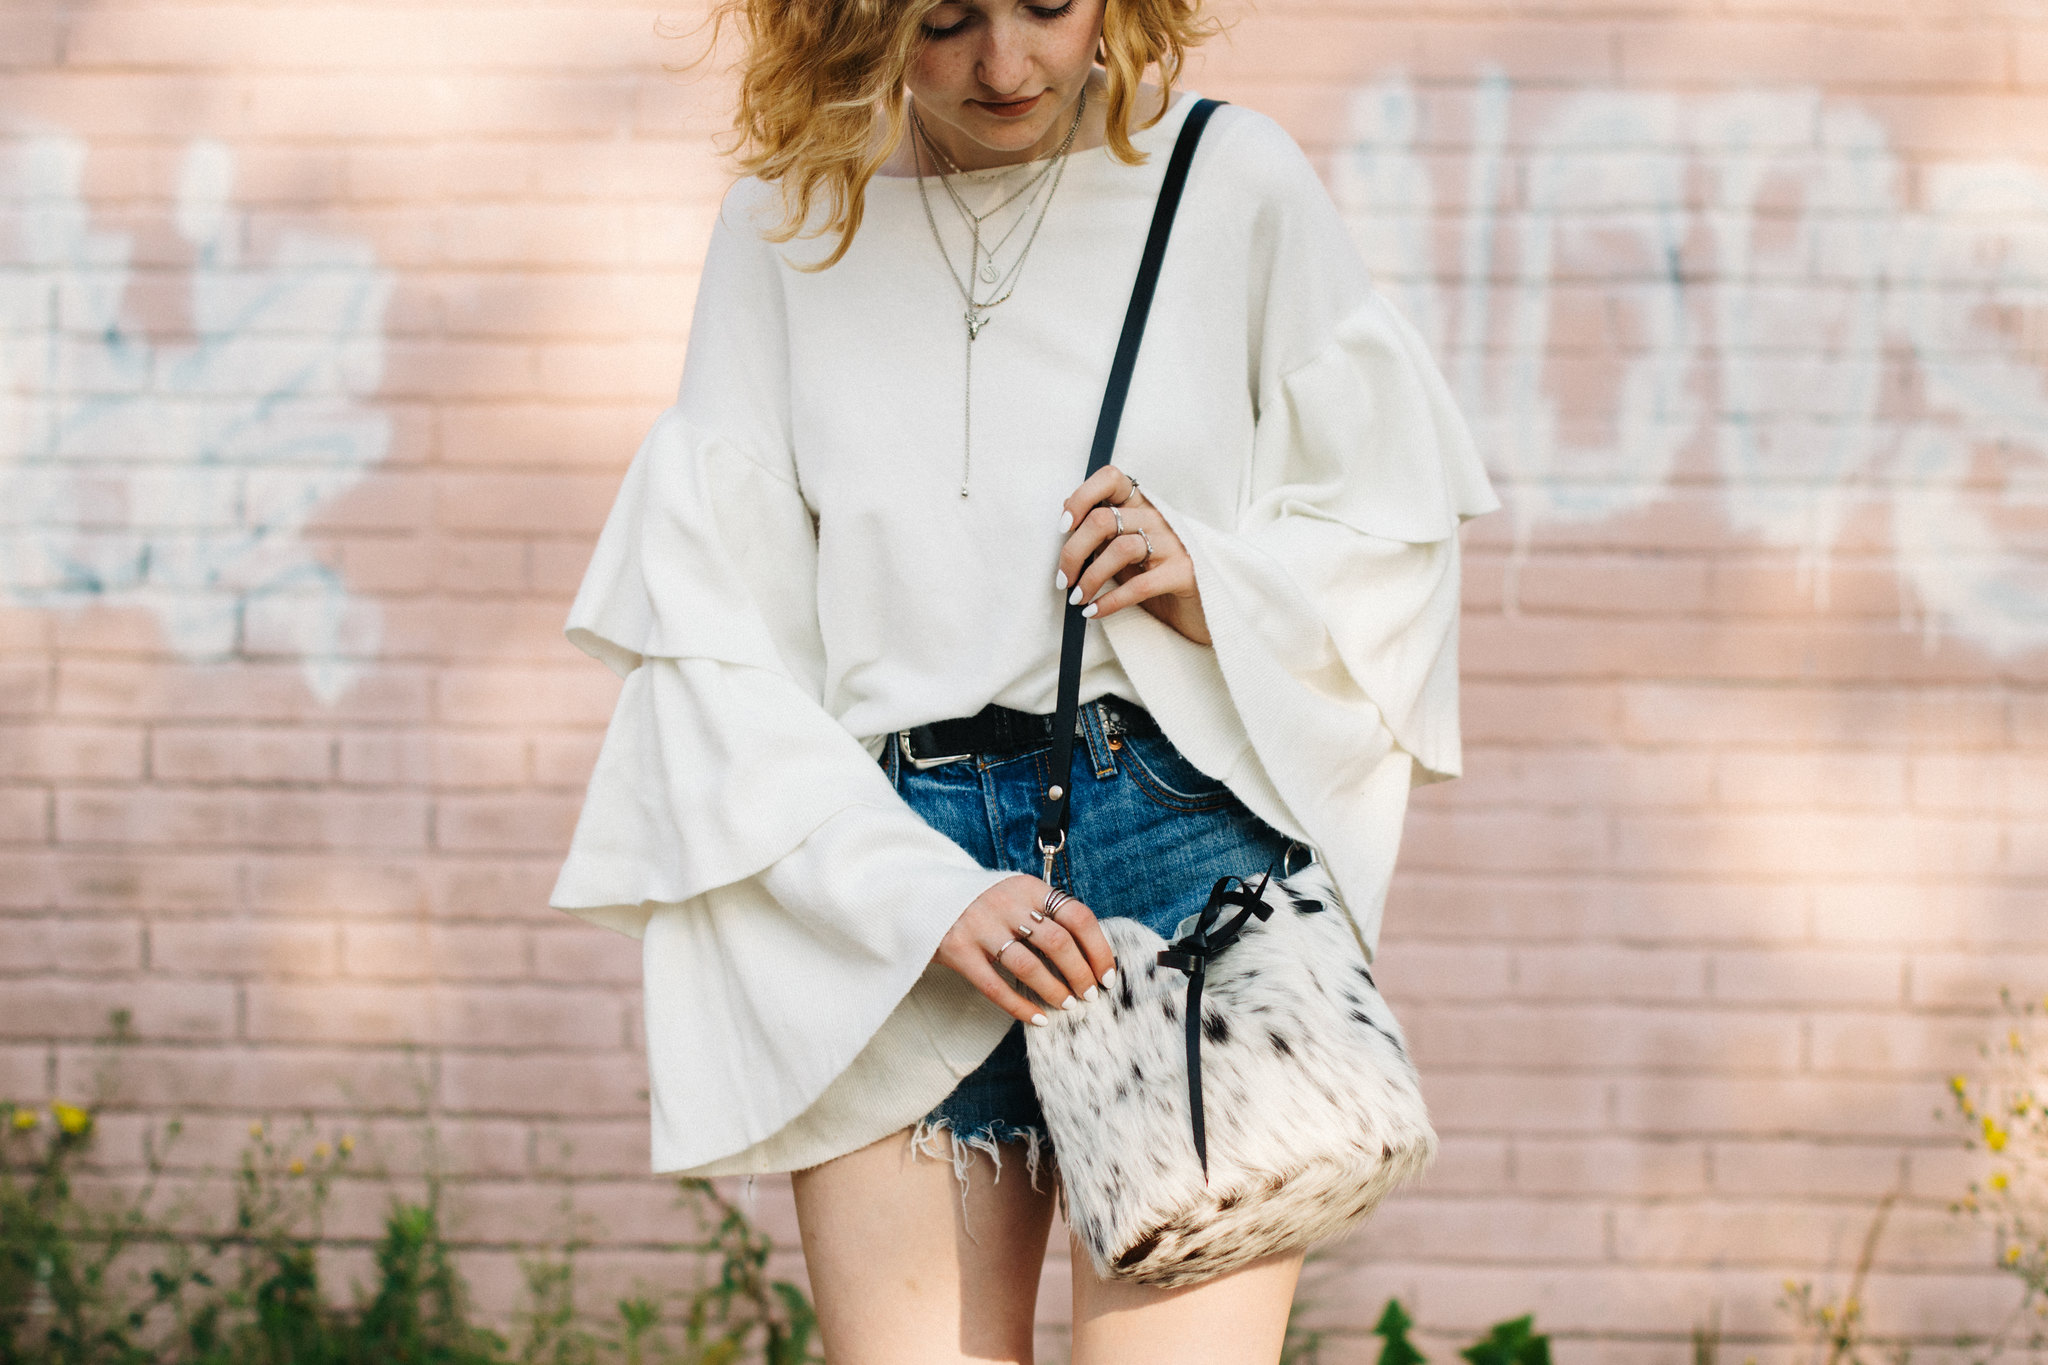 Major Bell Sleeves and a Cowhide Bucket Bag shot by Lauren O'Neil on juliettelaura.blogspot.com